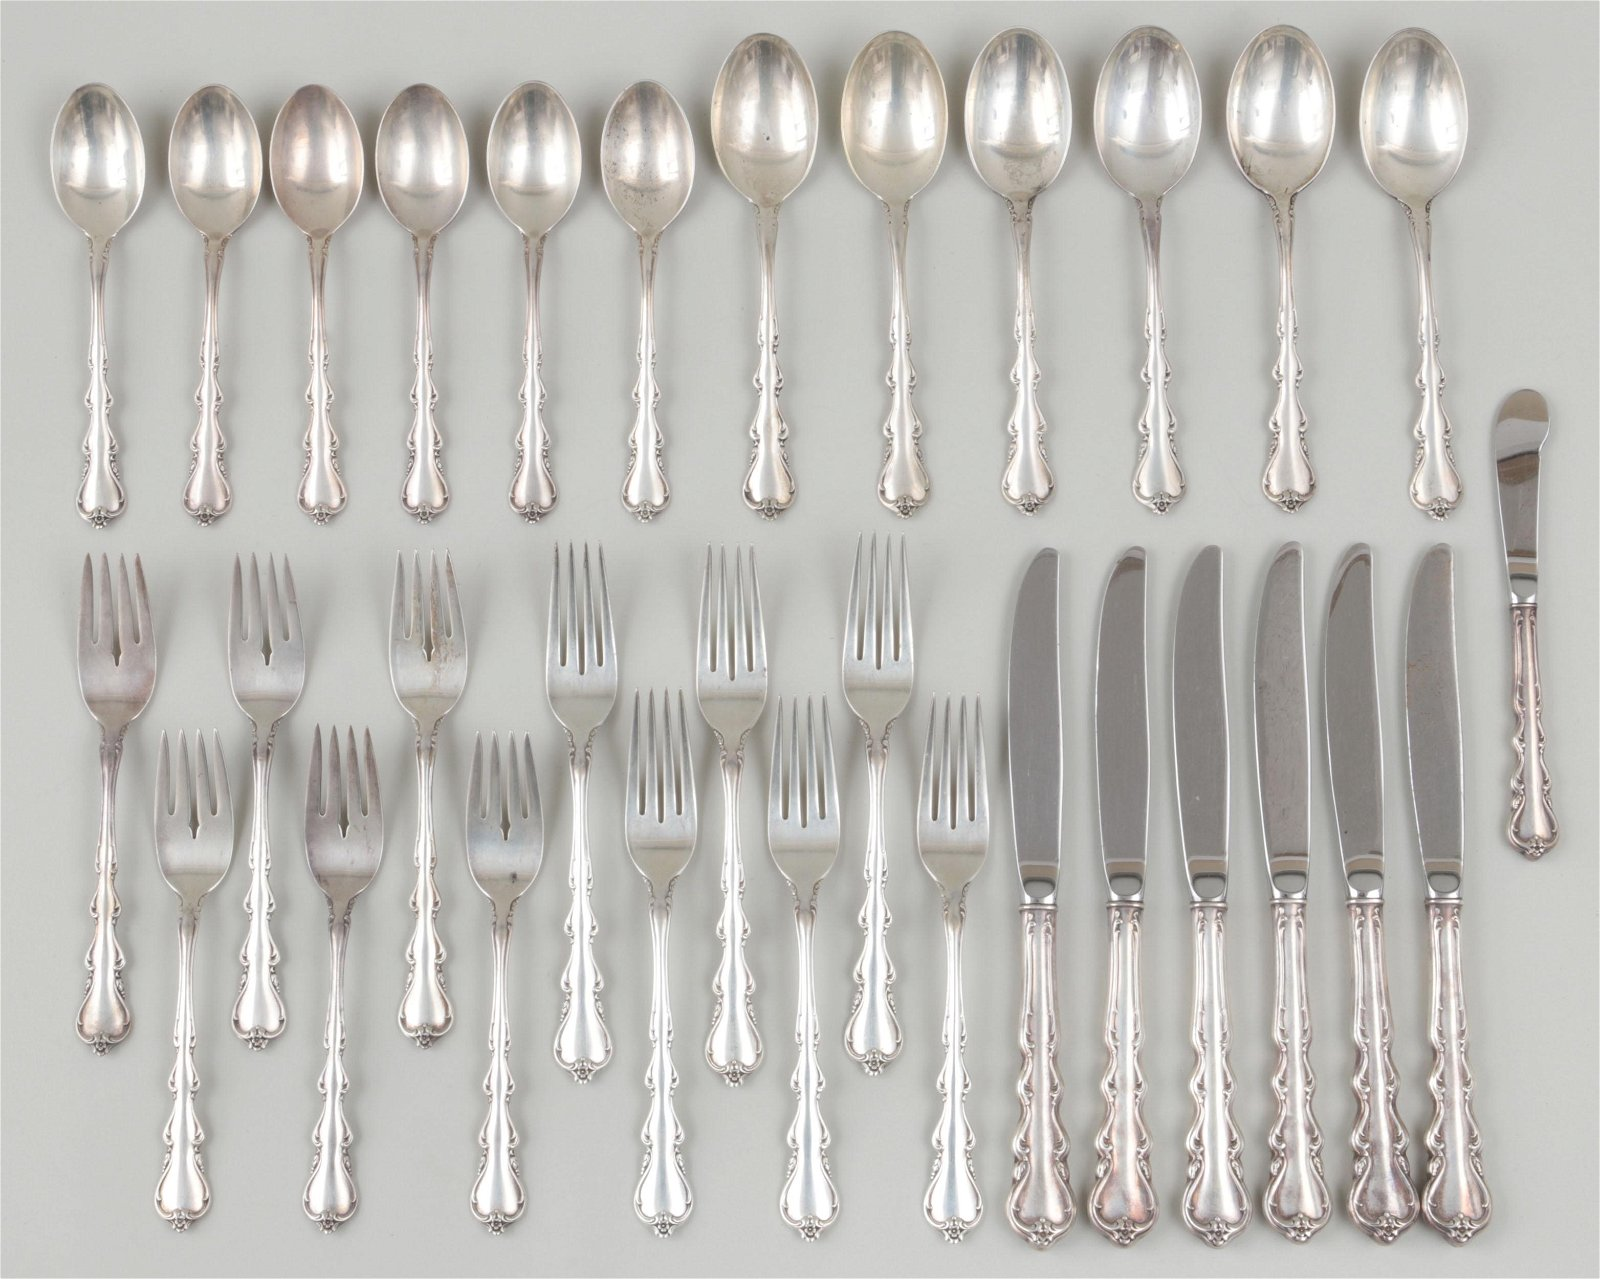 Sterling silver flatware service for six